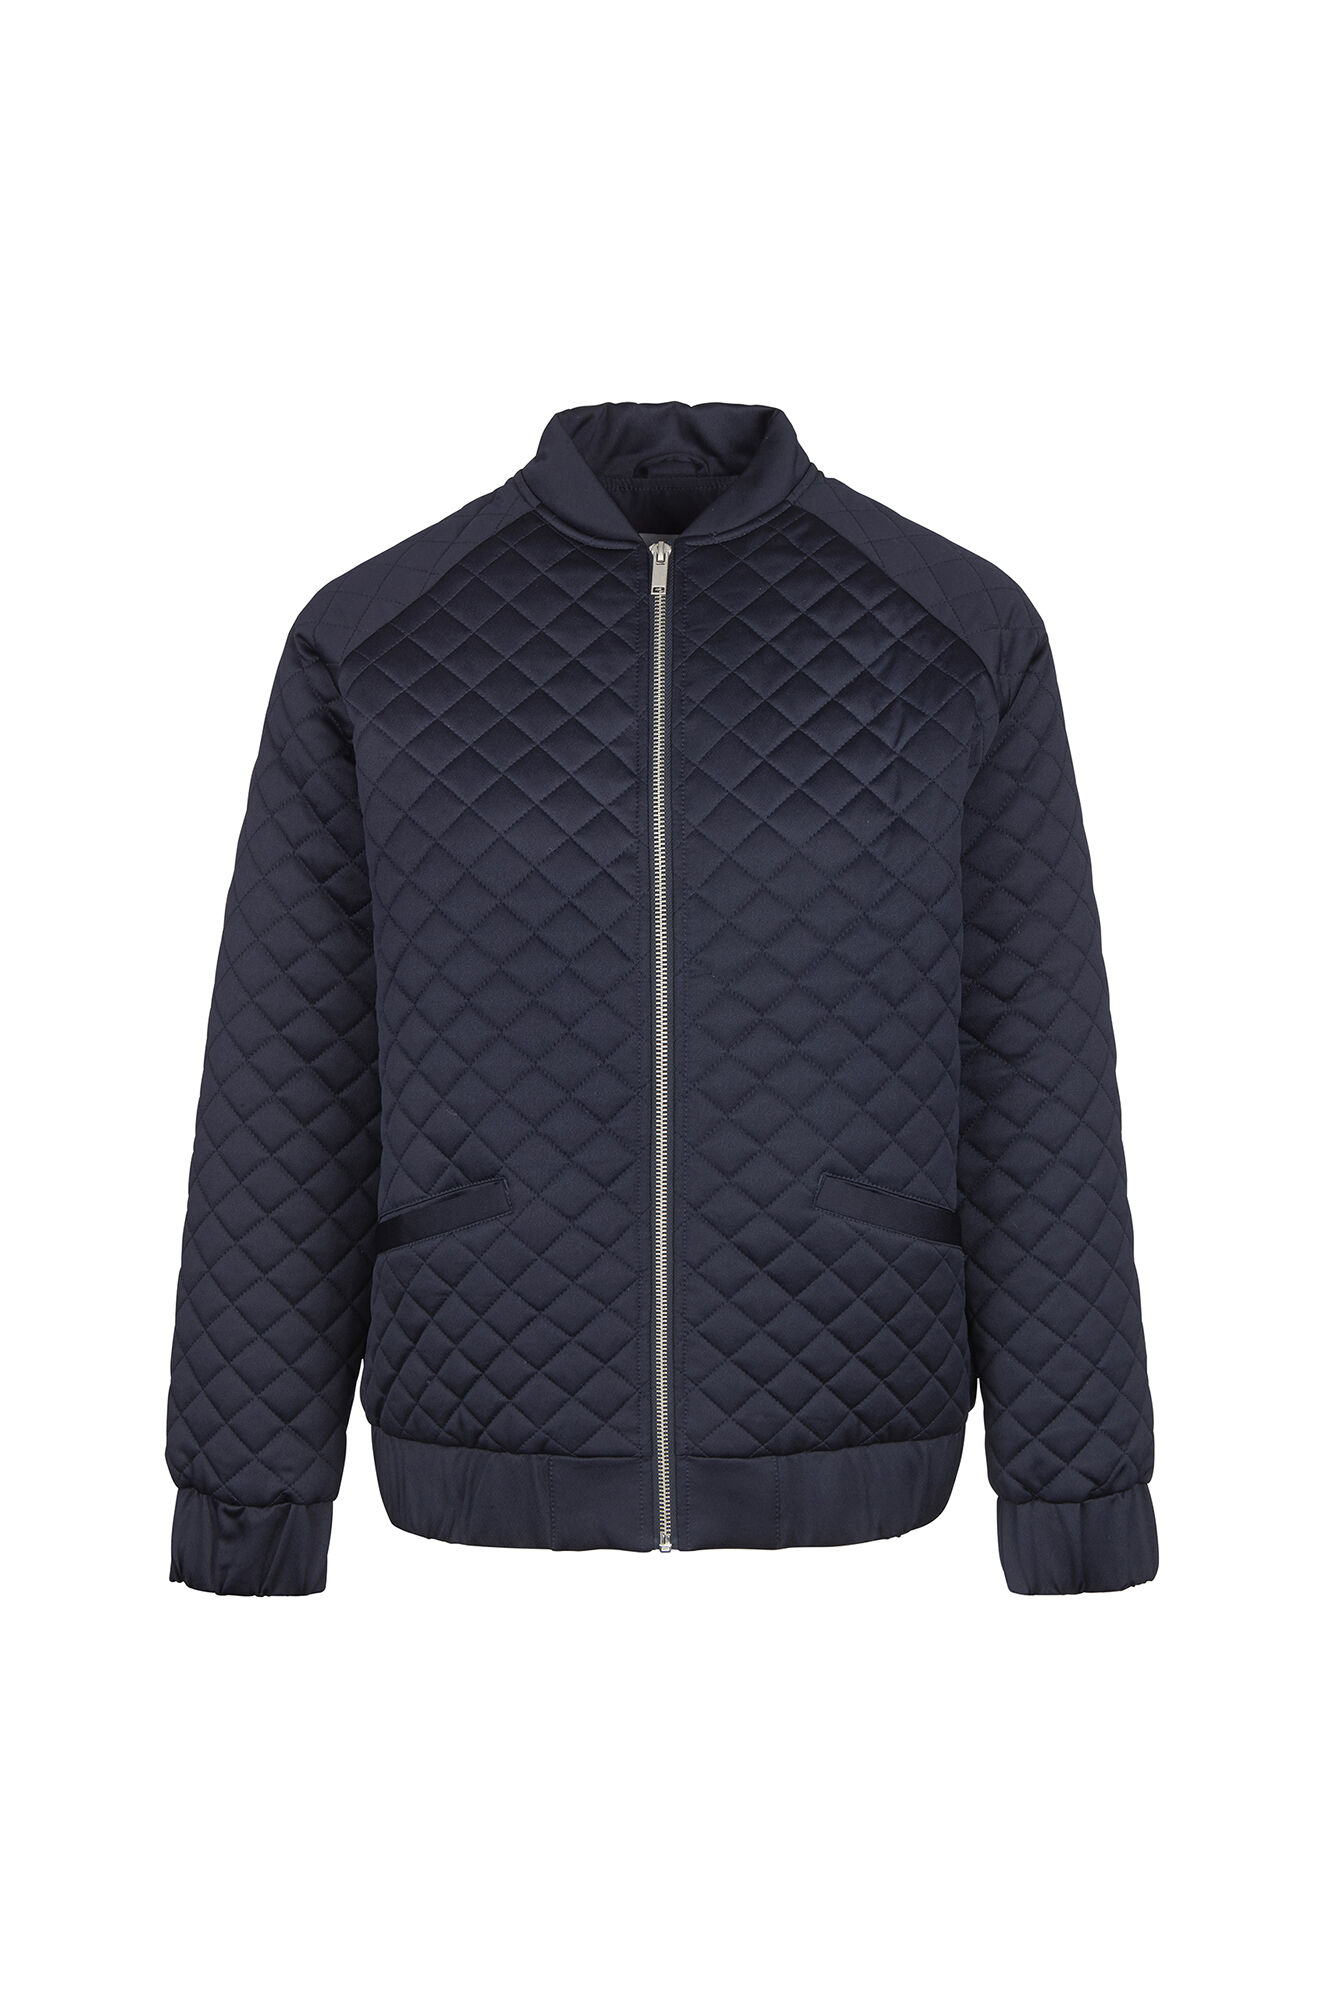 ROAD JACKET TIGERS 6426, NEW NAVY